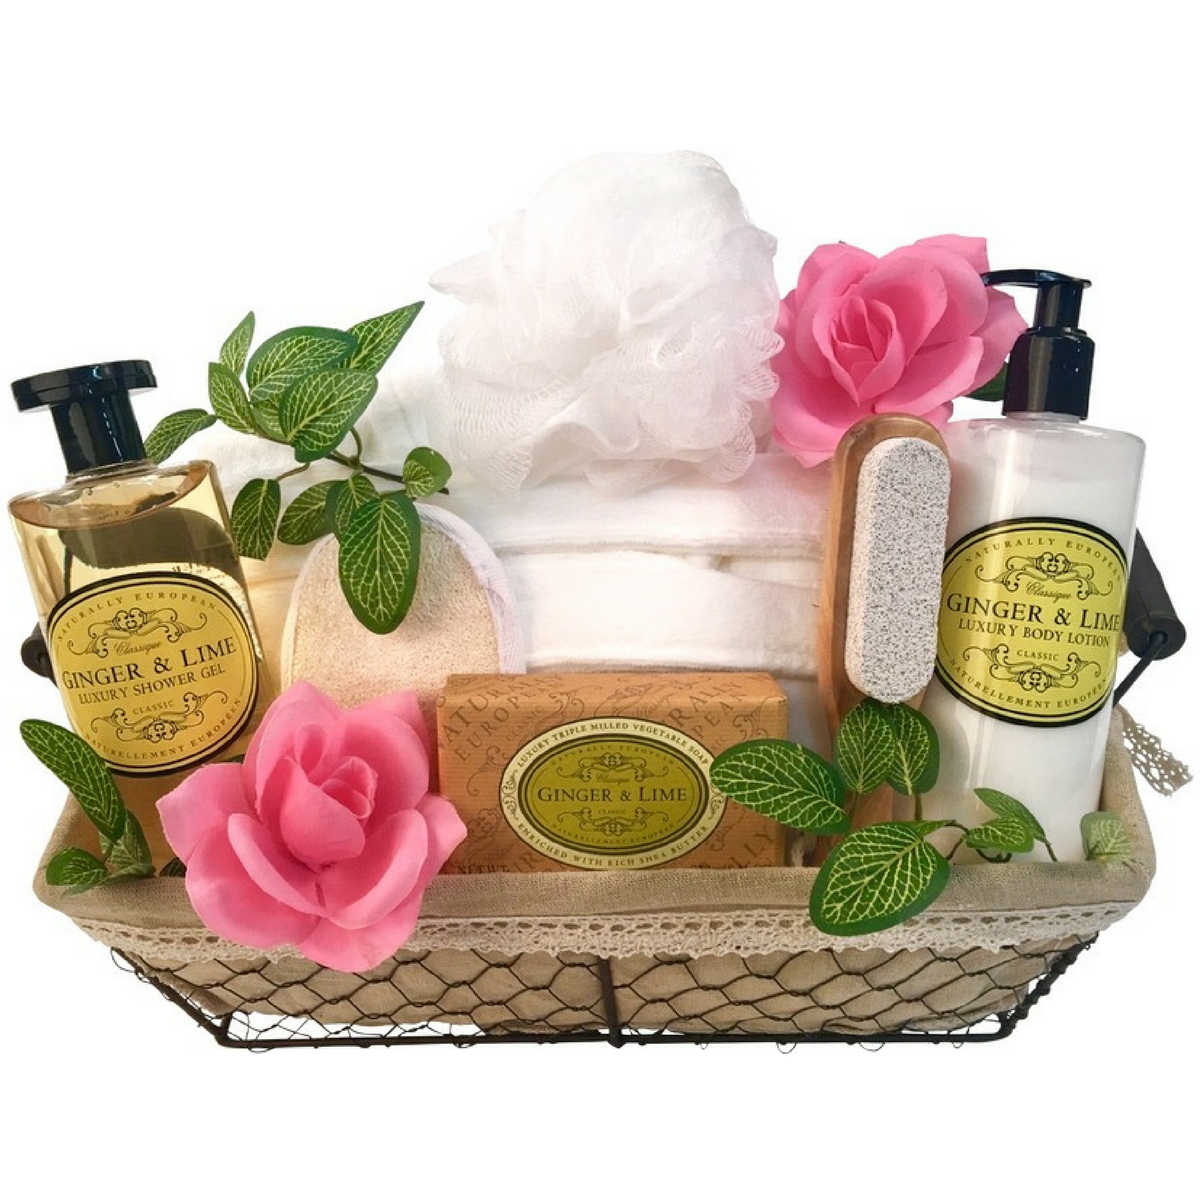 Gift baskets png. Favorite delivers gifts to